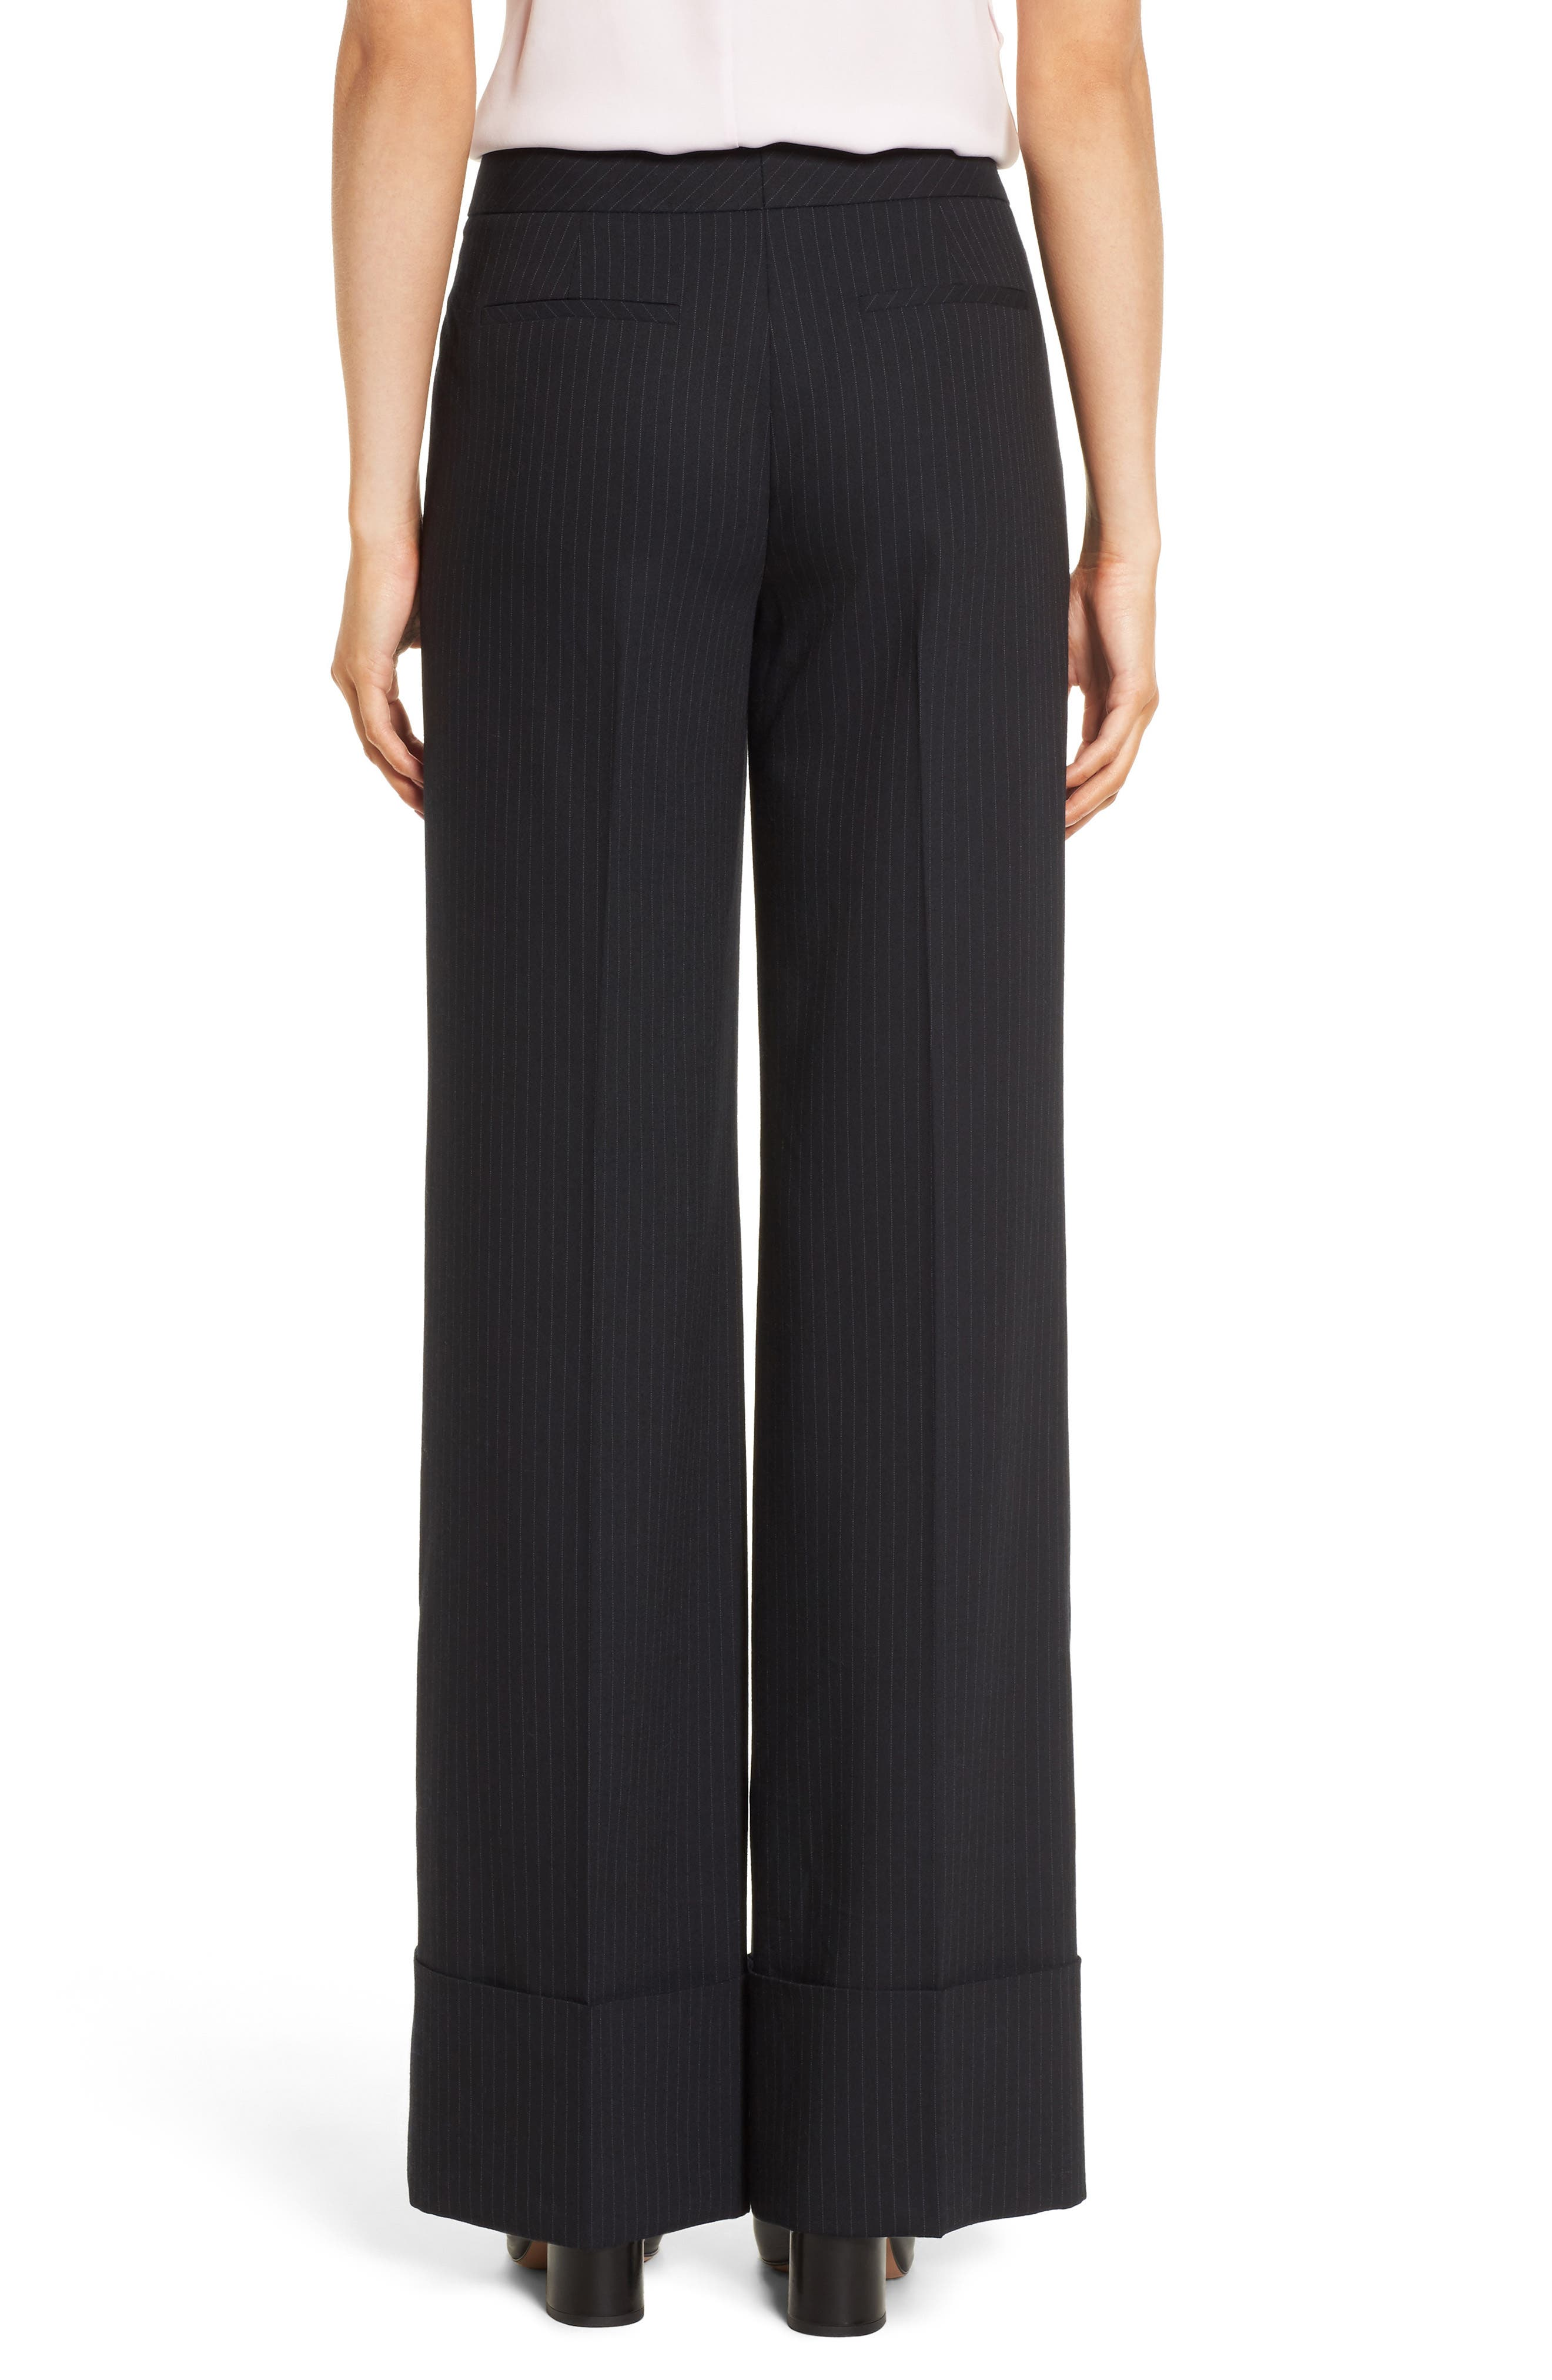 Cuffed Wide Leg Pinstripe Suit Pants,                             Alternate thumbnail 2, color,